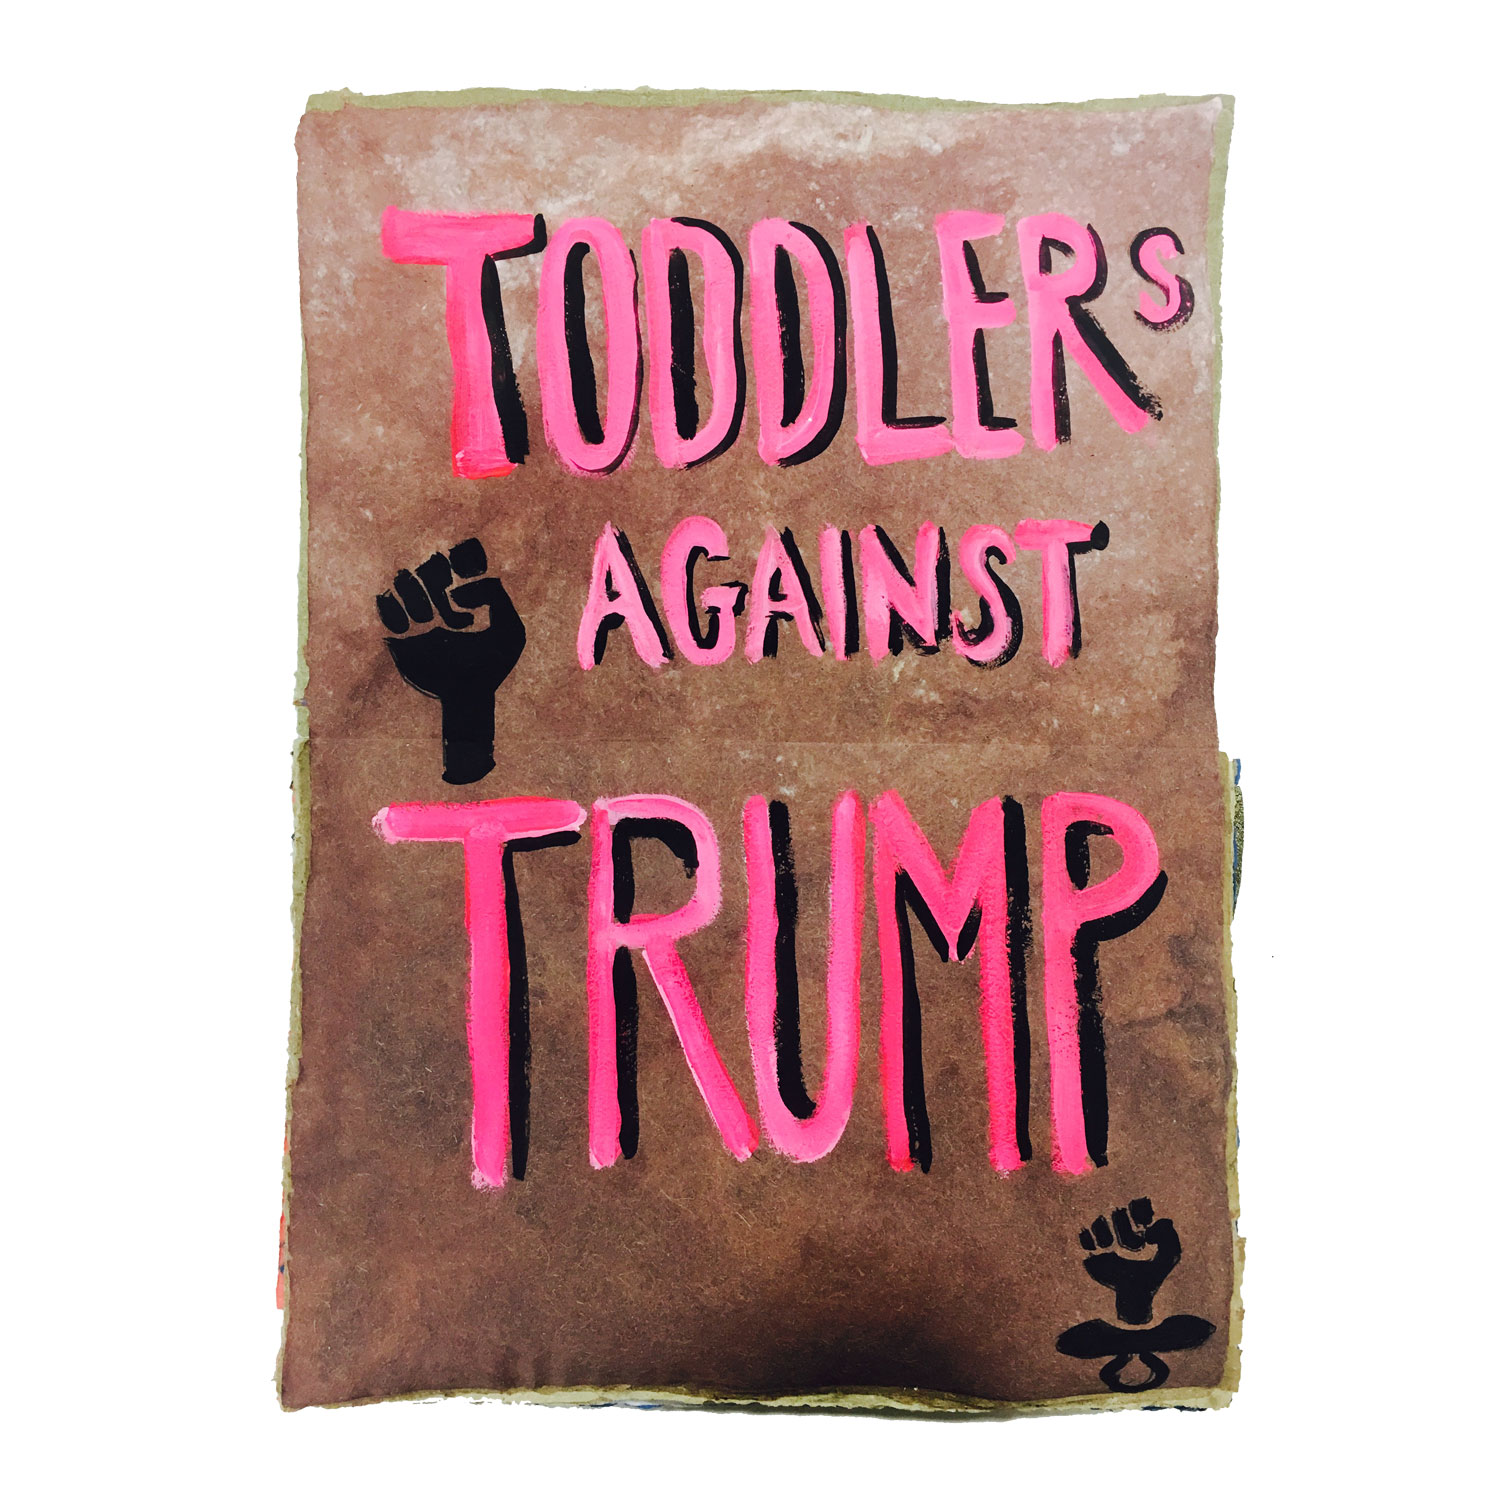 Toddlers Against Trump